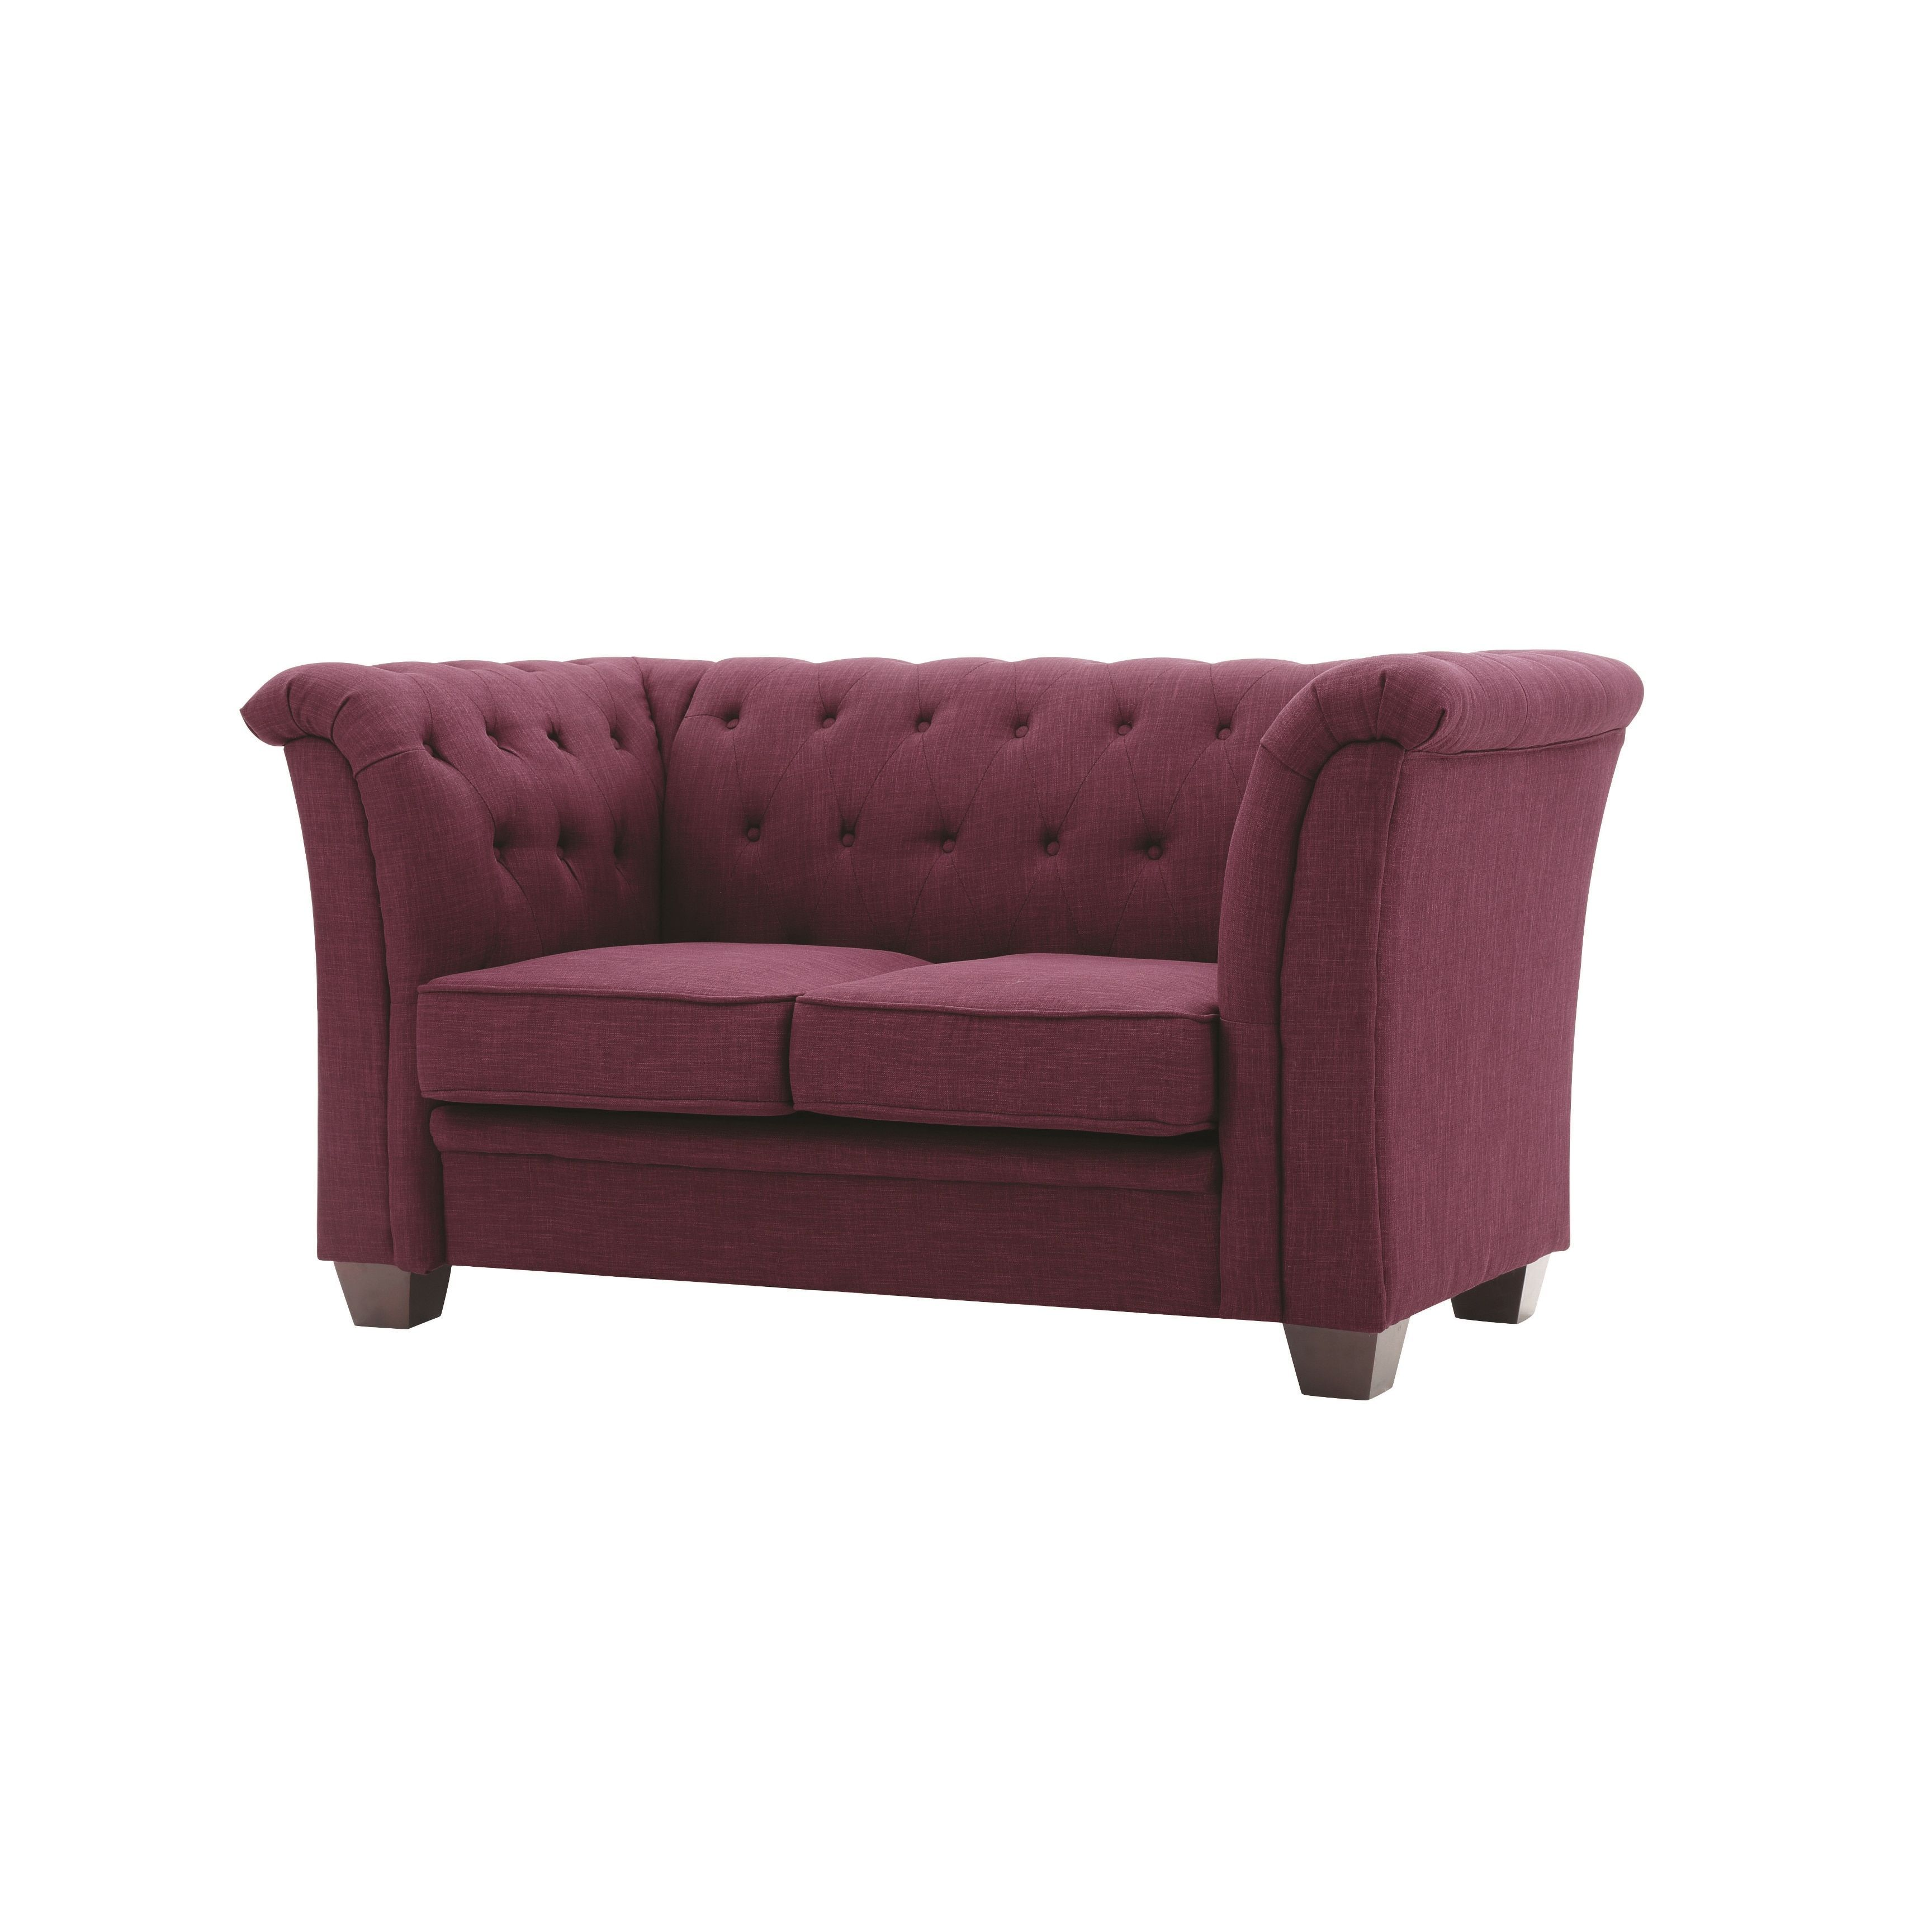 Lyke Home Tufted Twill Loveseat